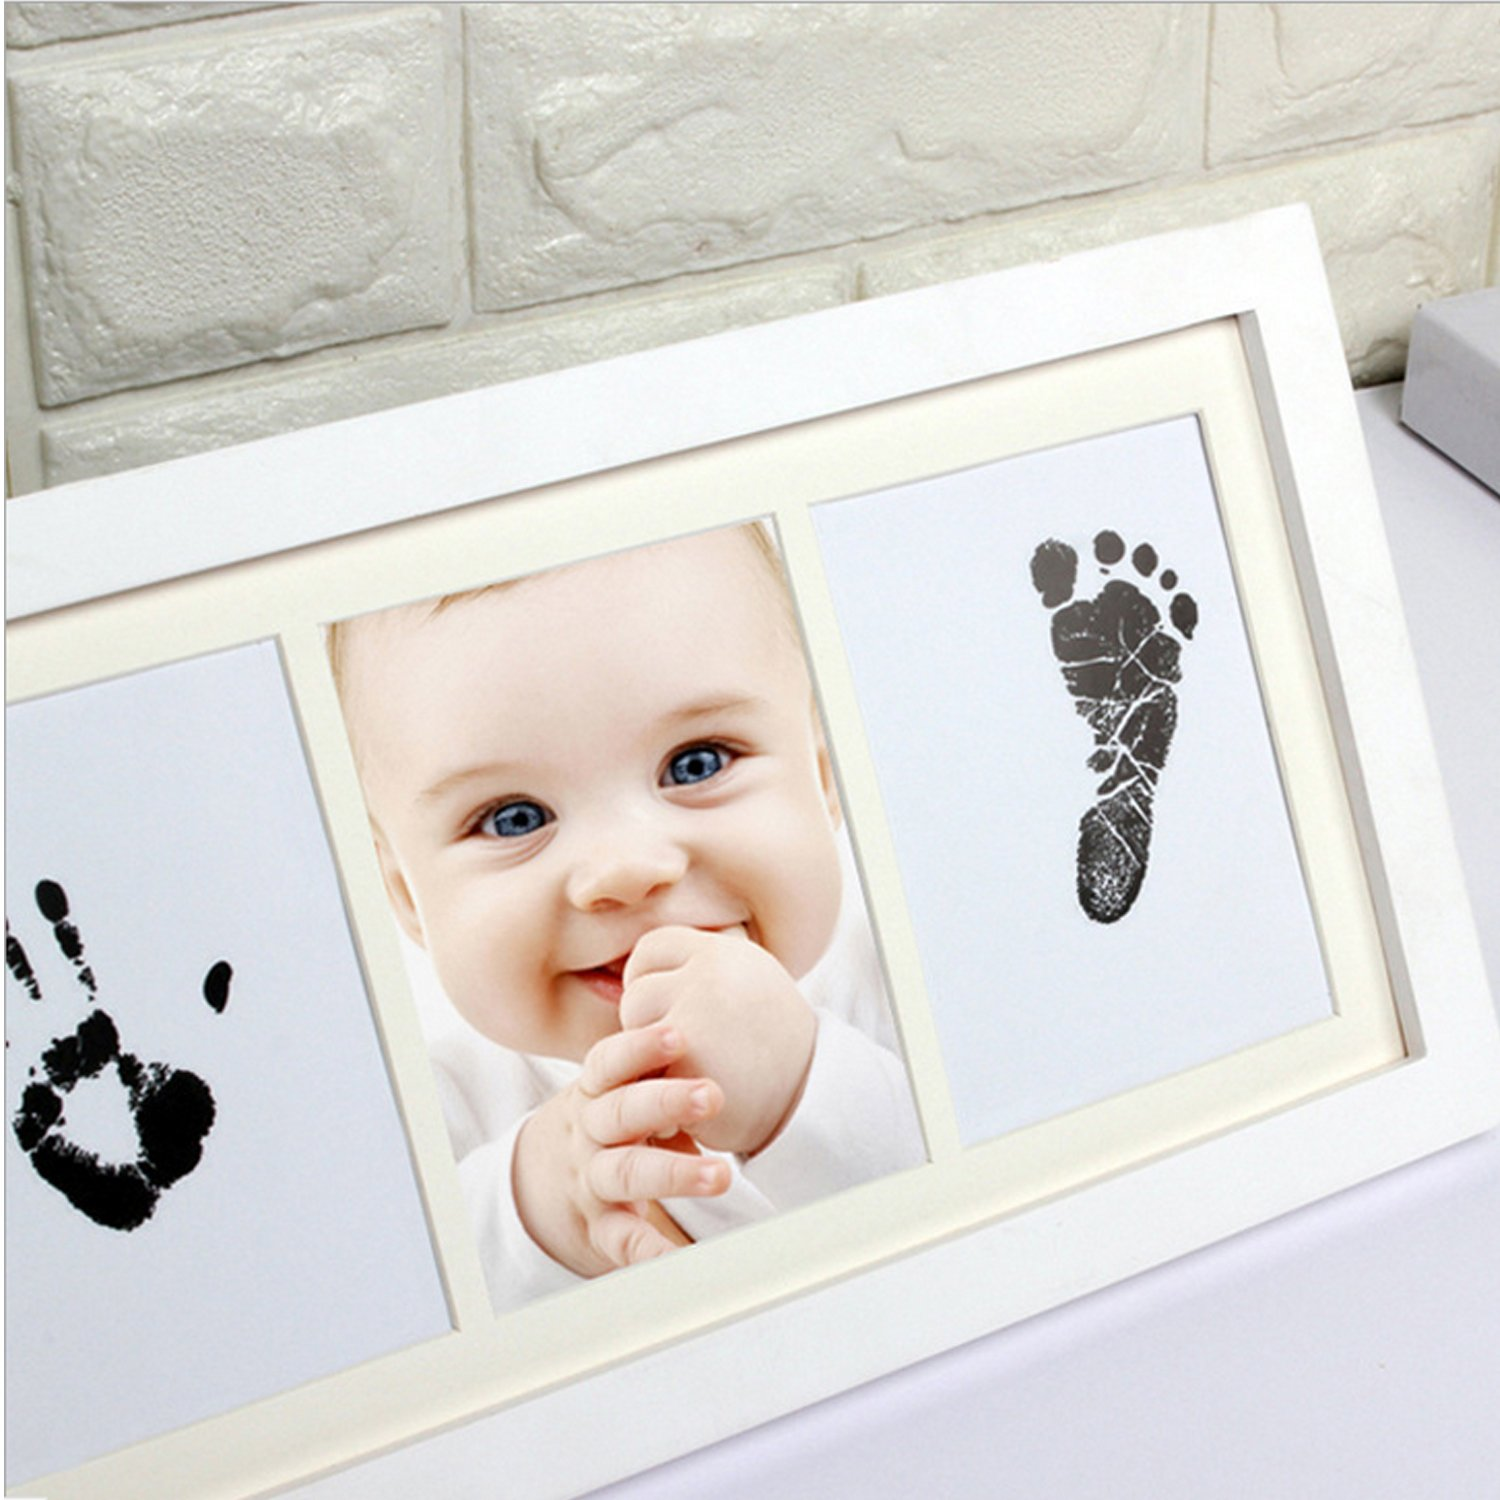 Baby Handprint Kit Clay Picture Frame (White) Best Shower Gifts Set ...